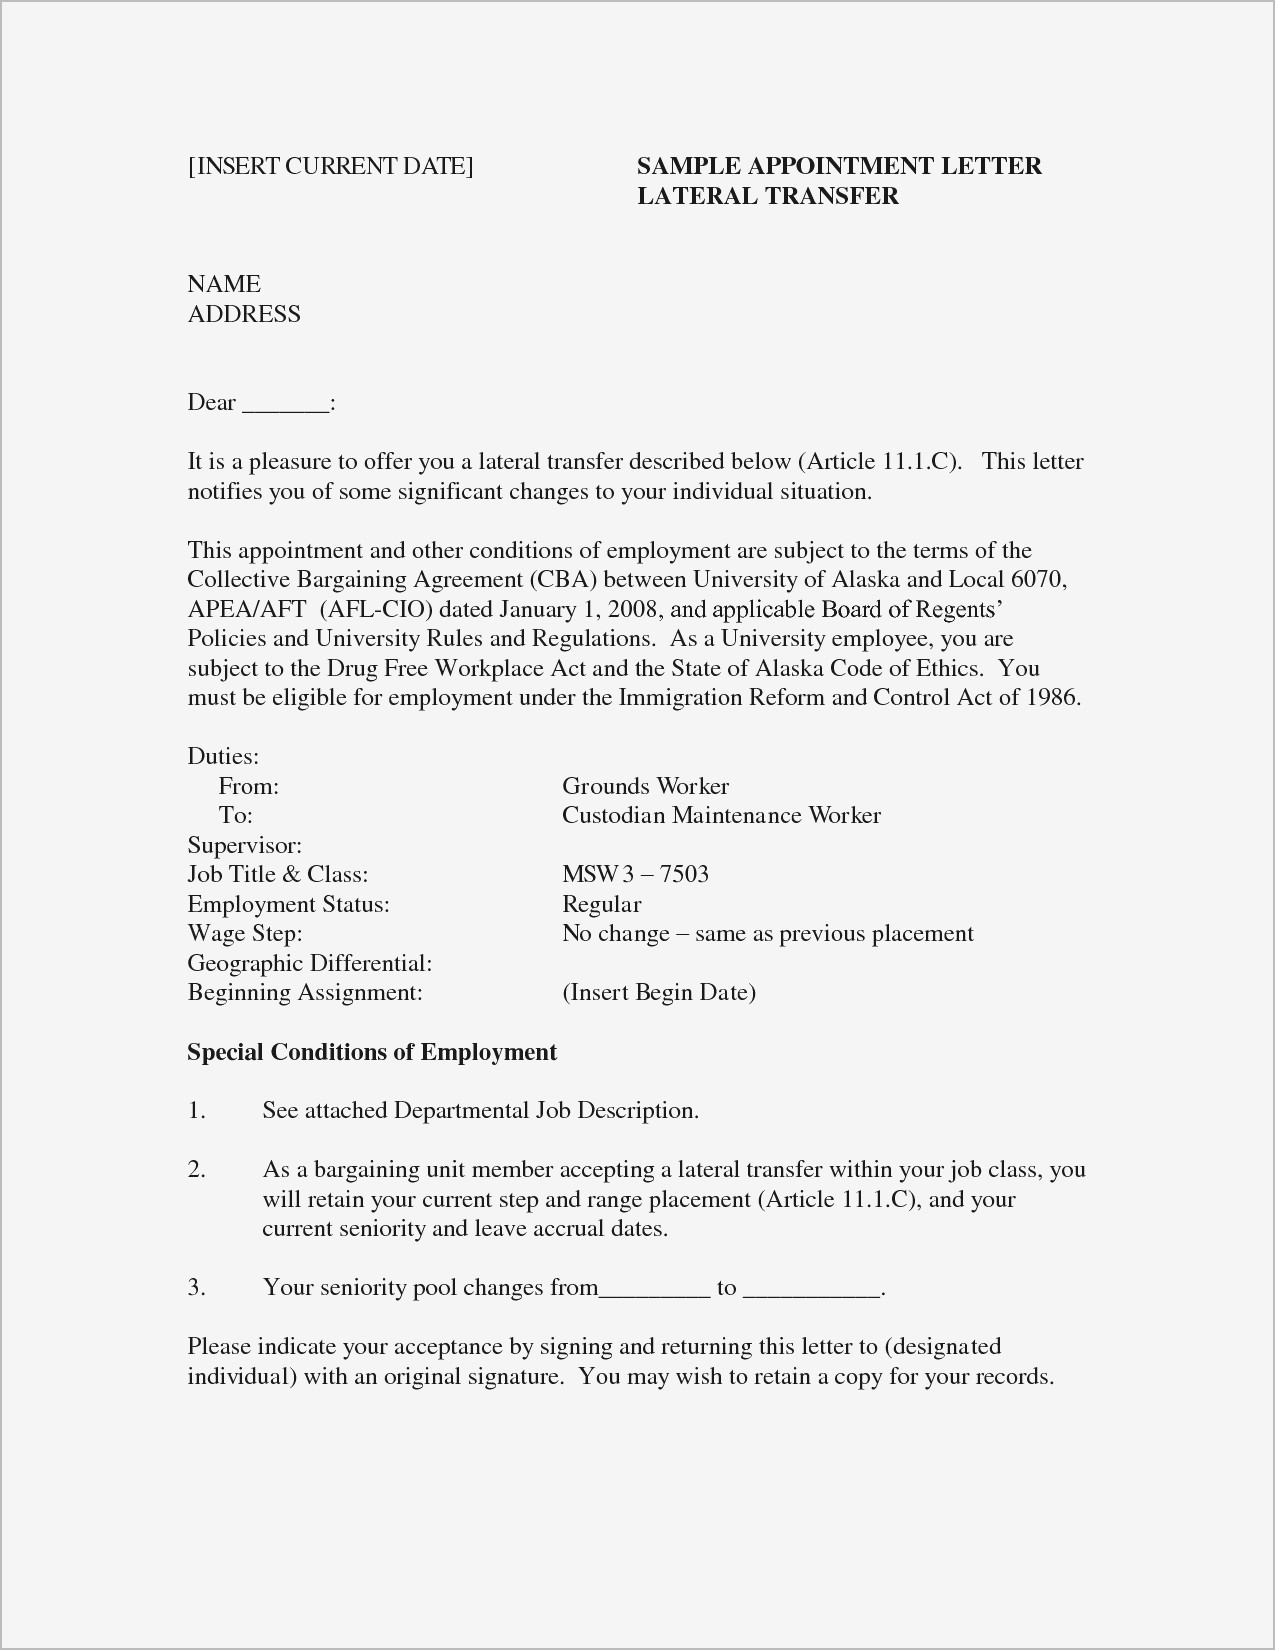 Real Estate Introduction Letter Template - Real Estate Introduction Letter Real Estate Agent Resume No